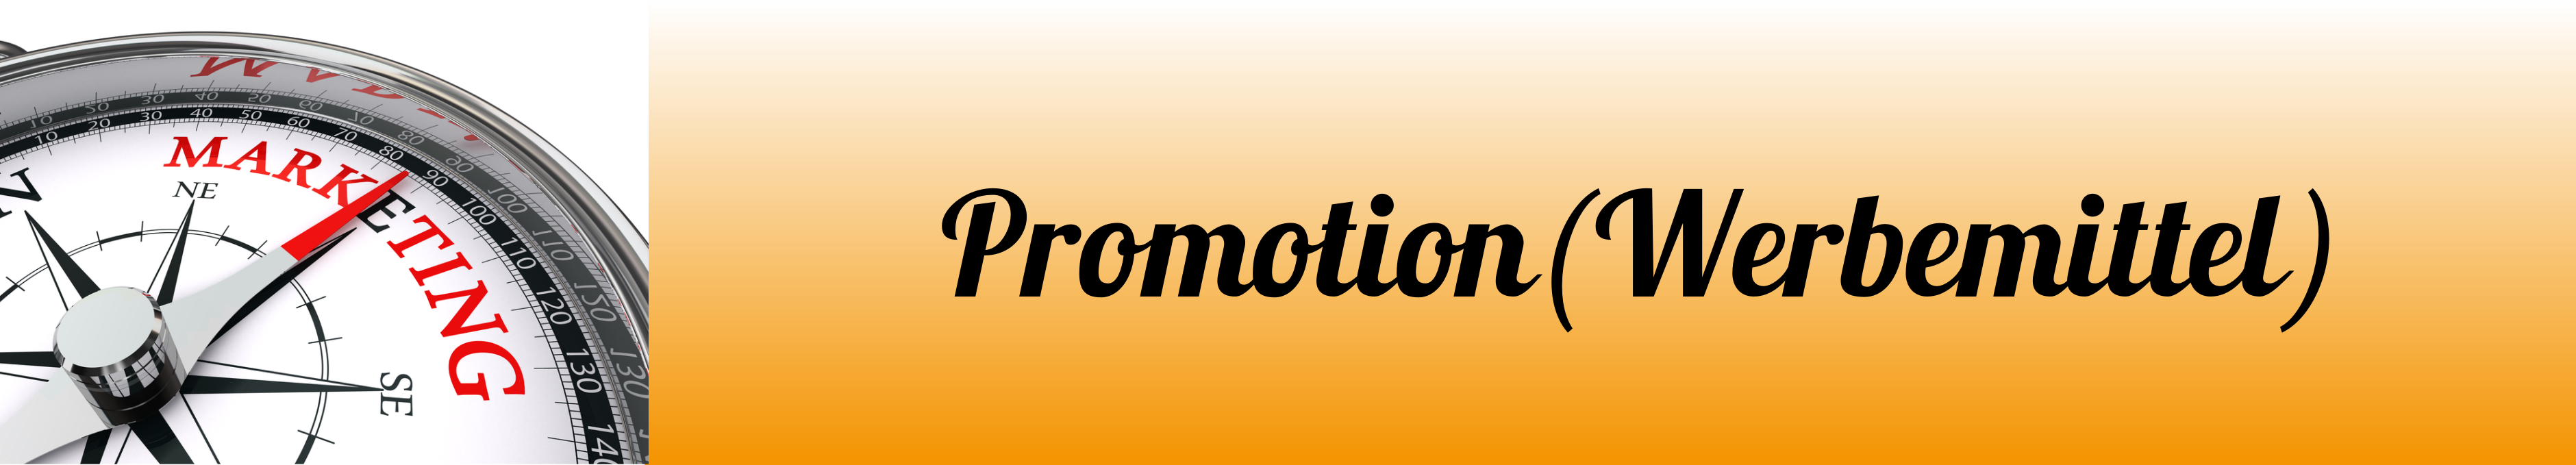 Banner Marketing Promotion Werbemittel